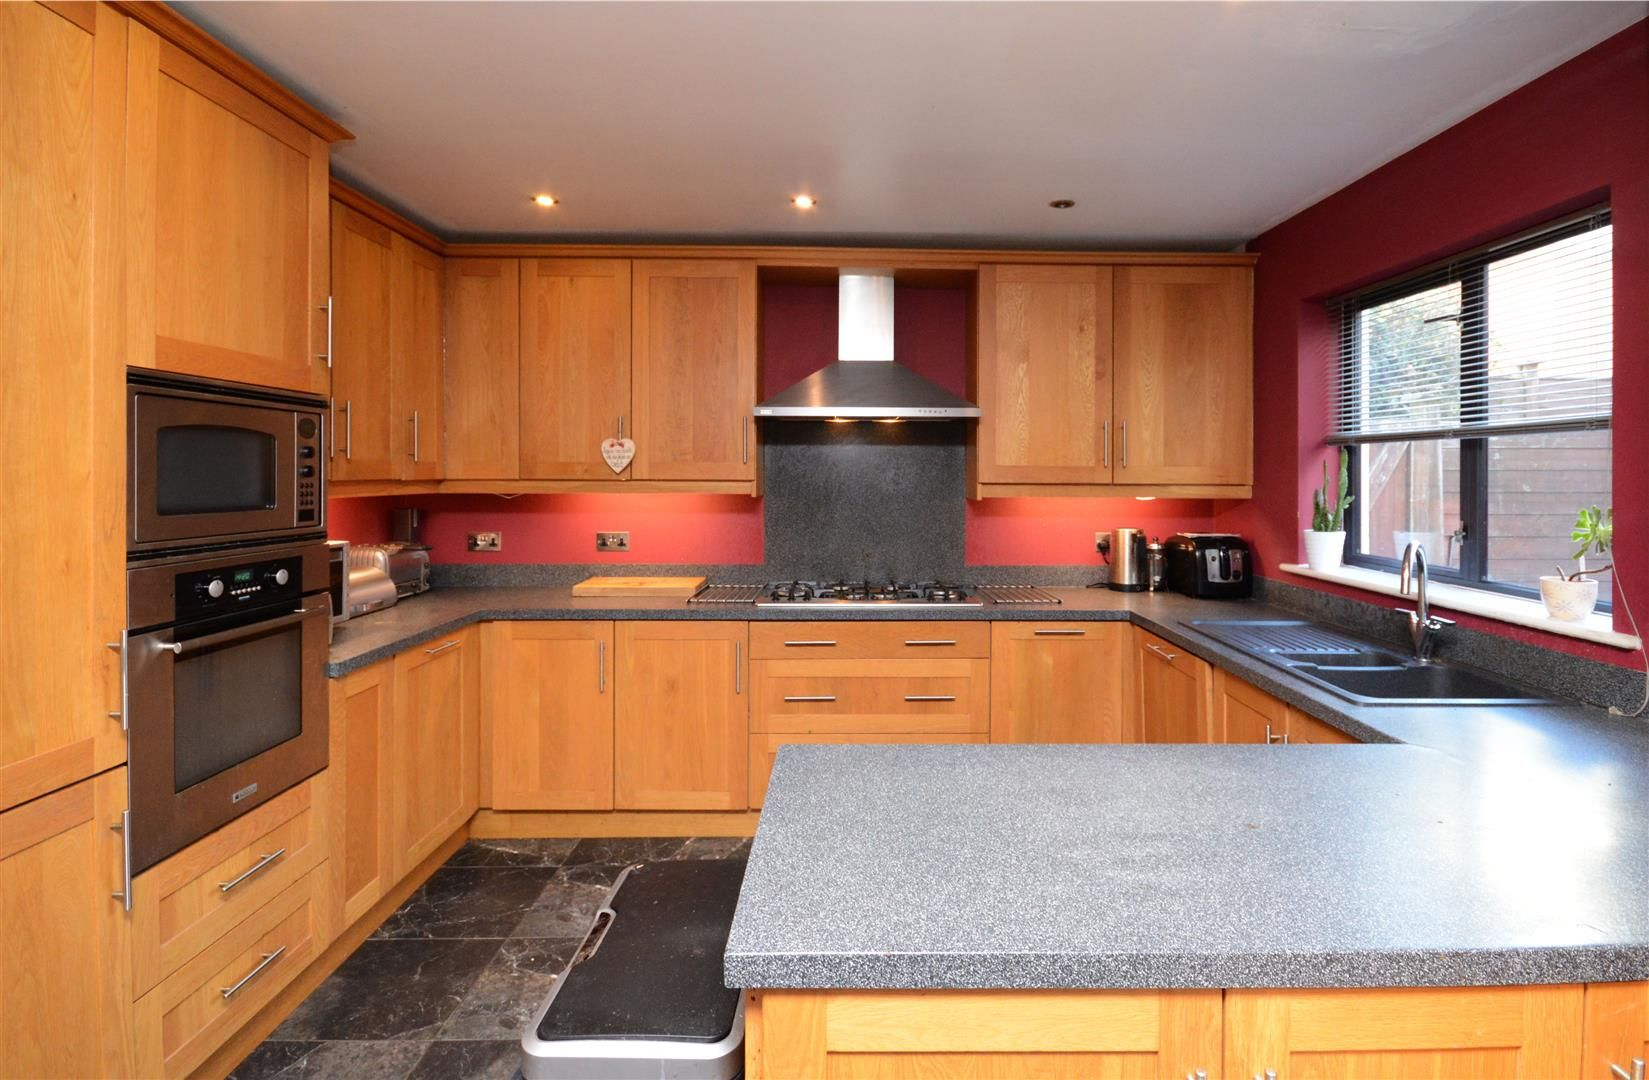 5 bed end of terrace for sale 4